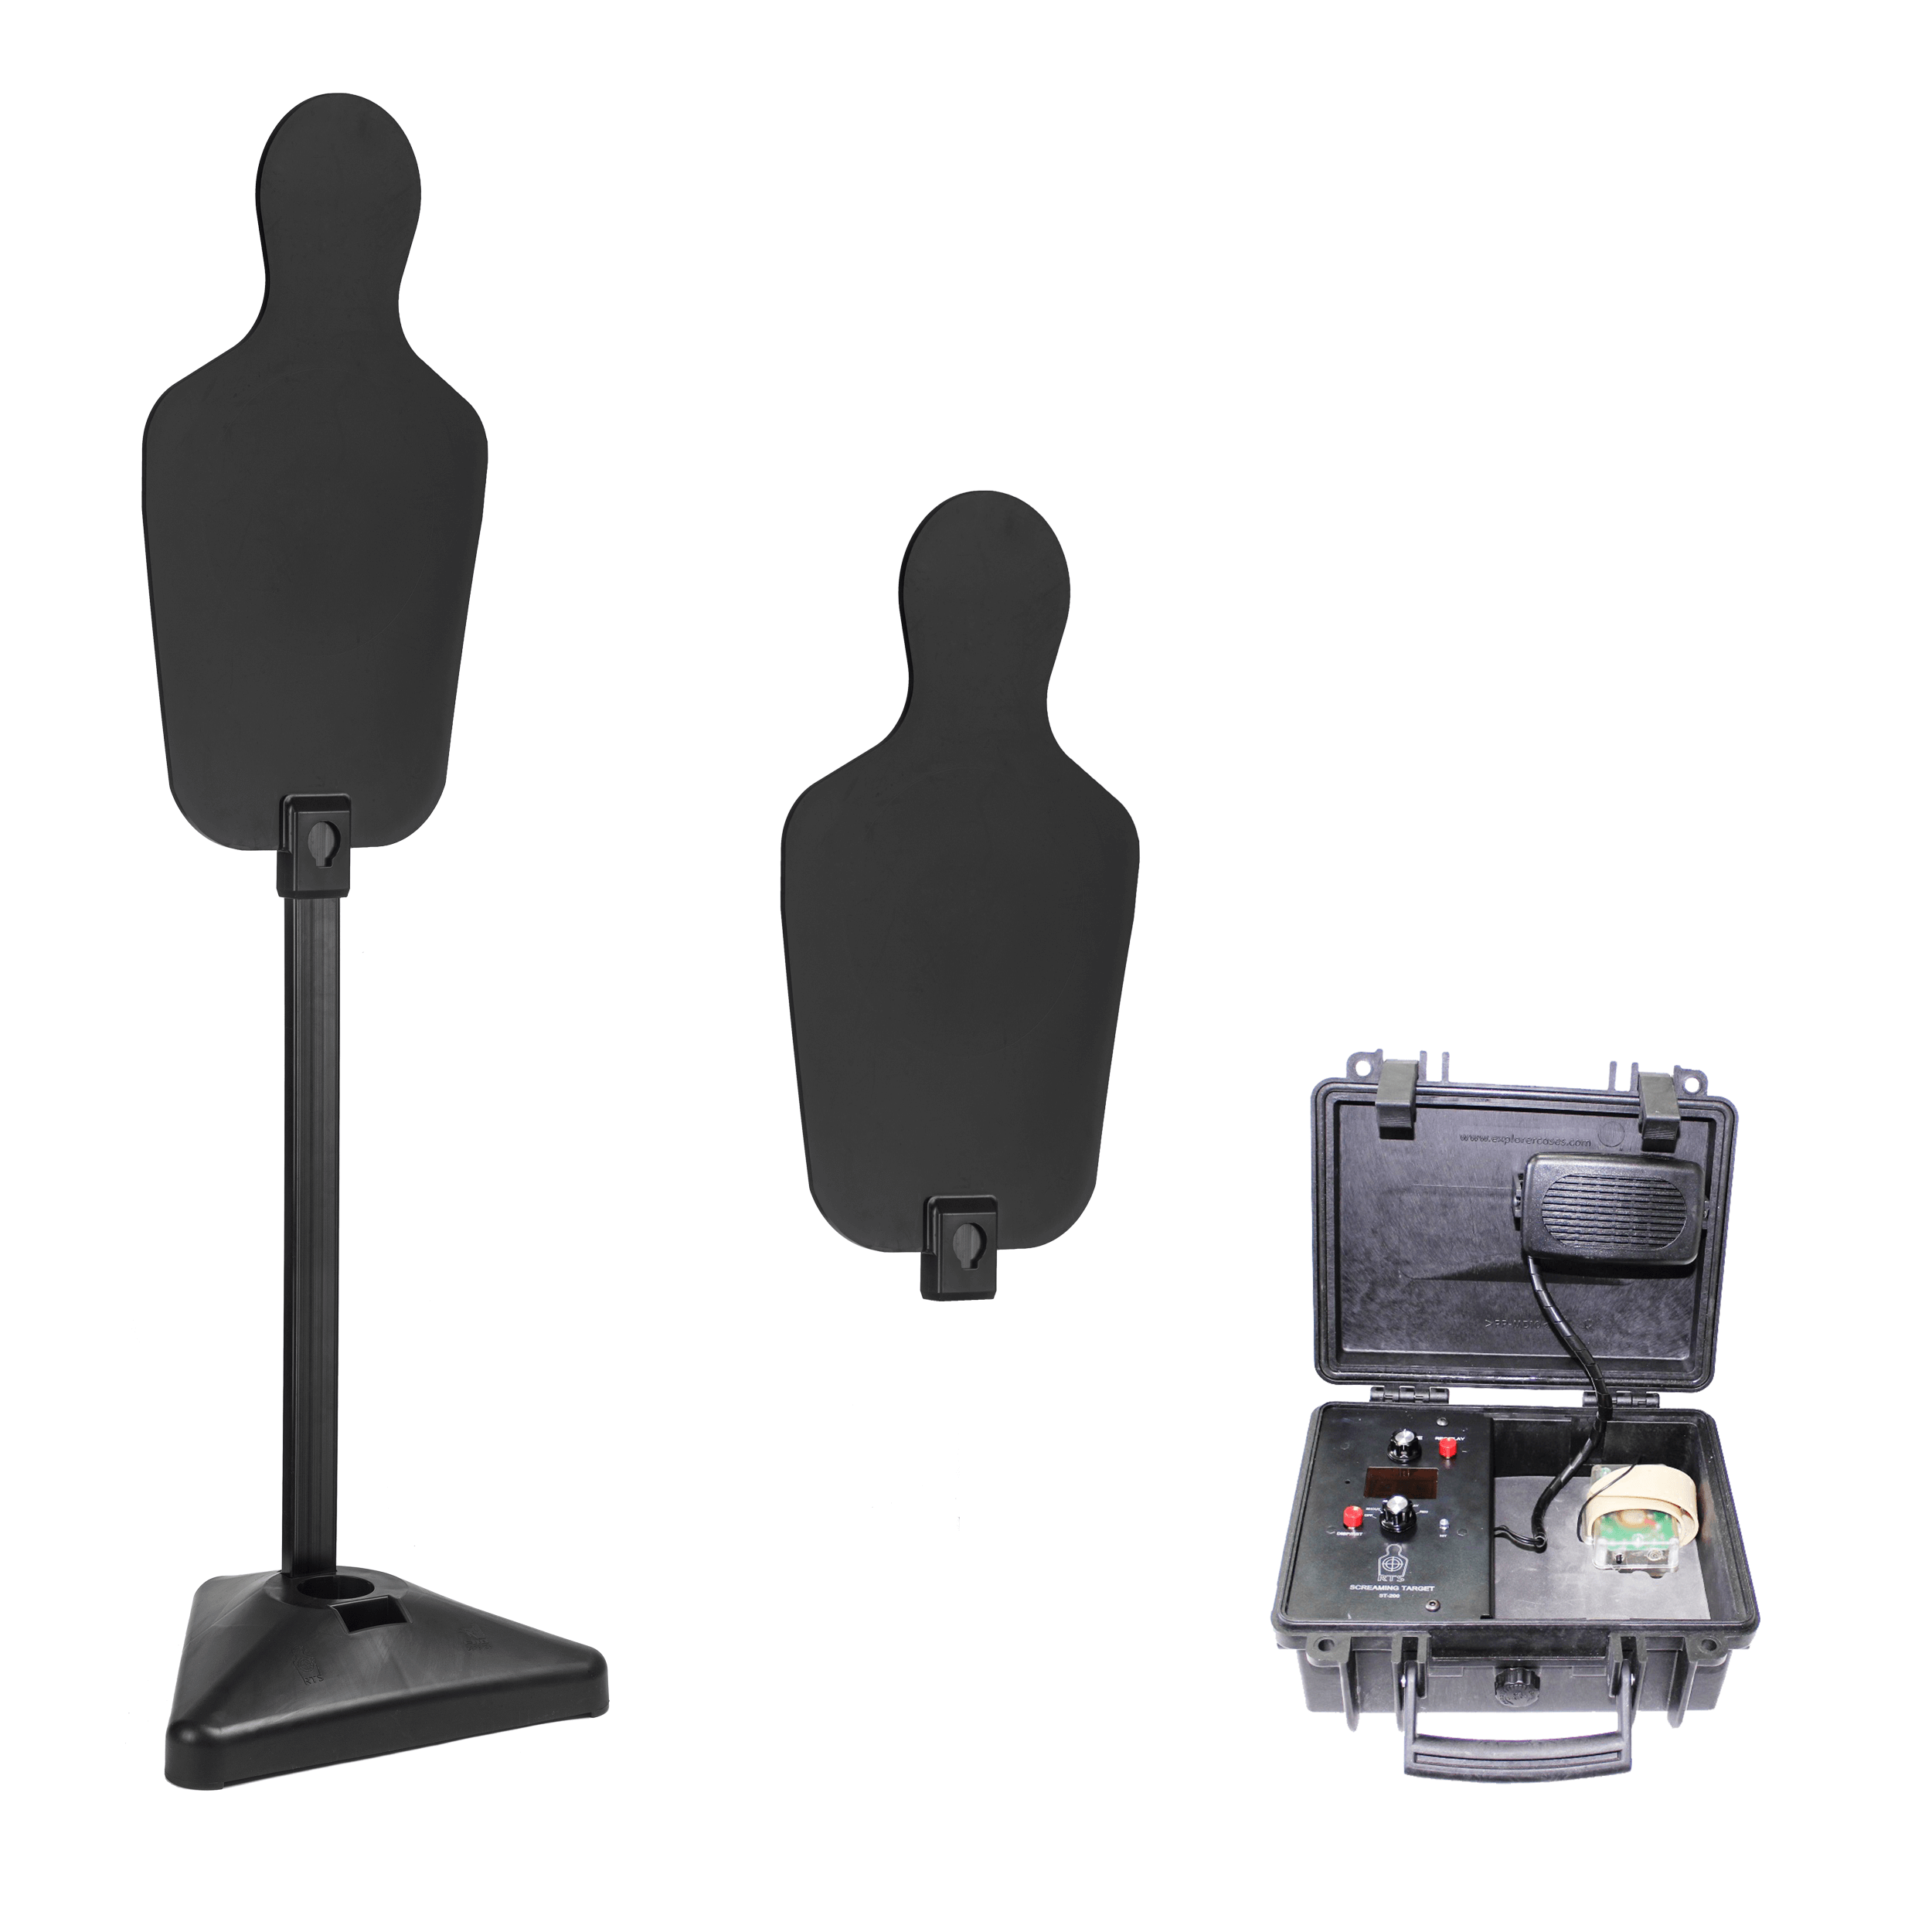 Self-Healing Screaming Static Target Kit